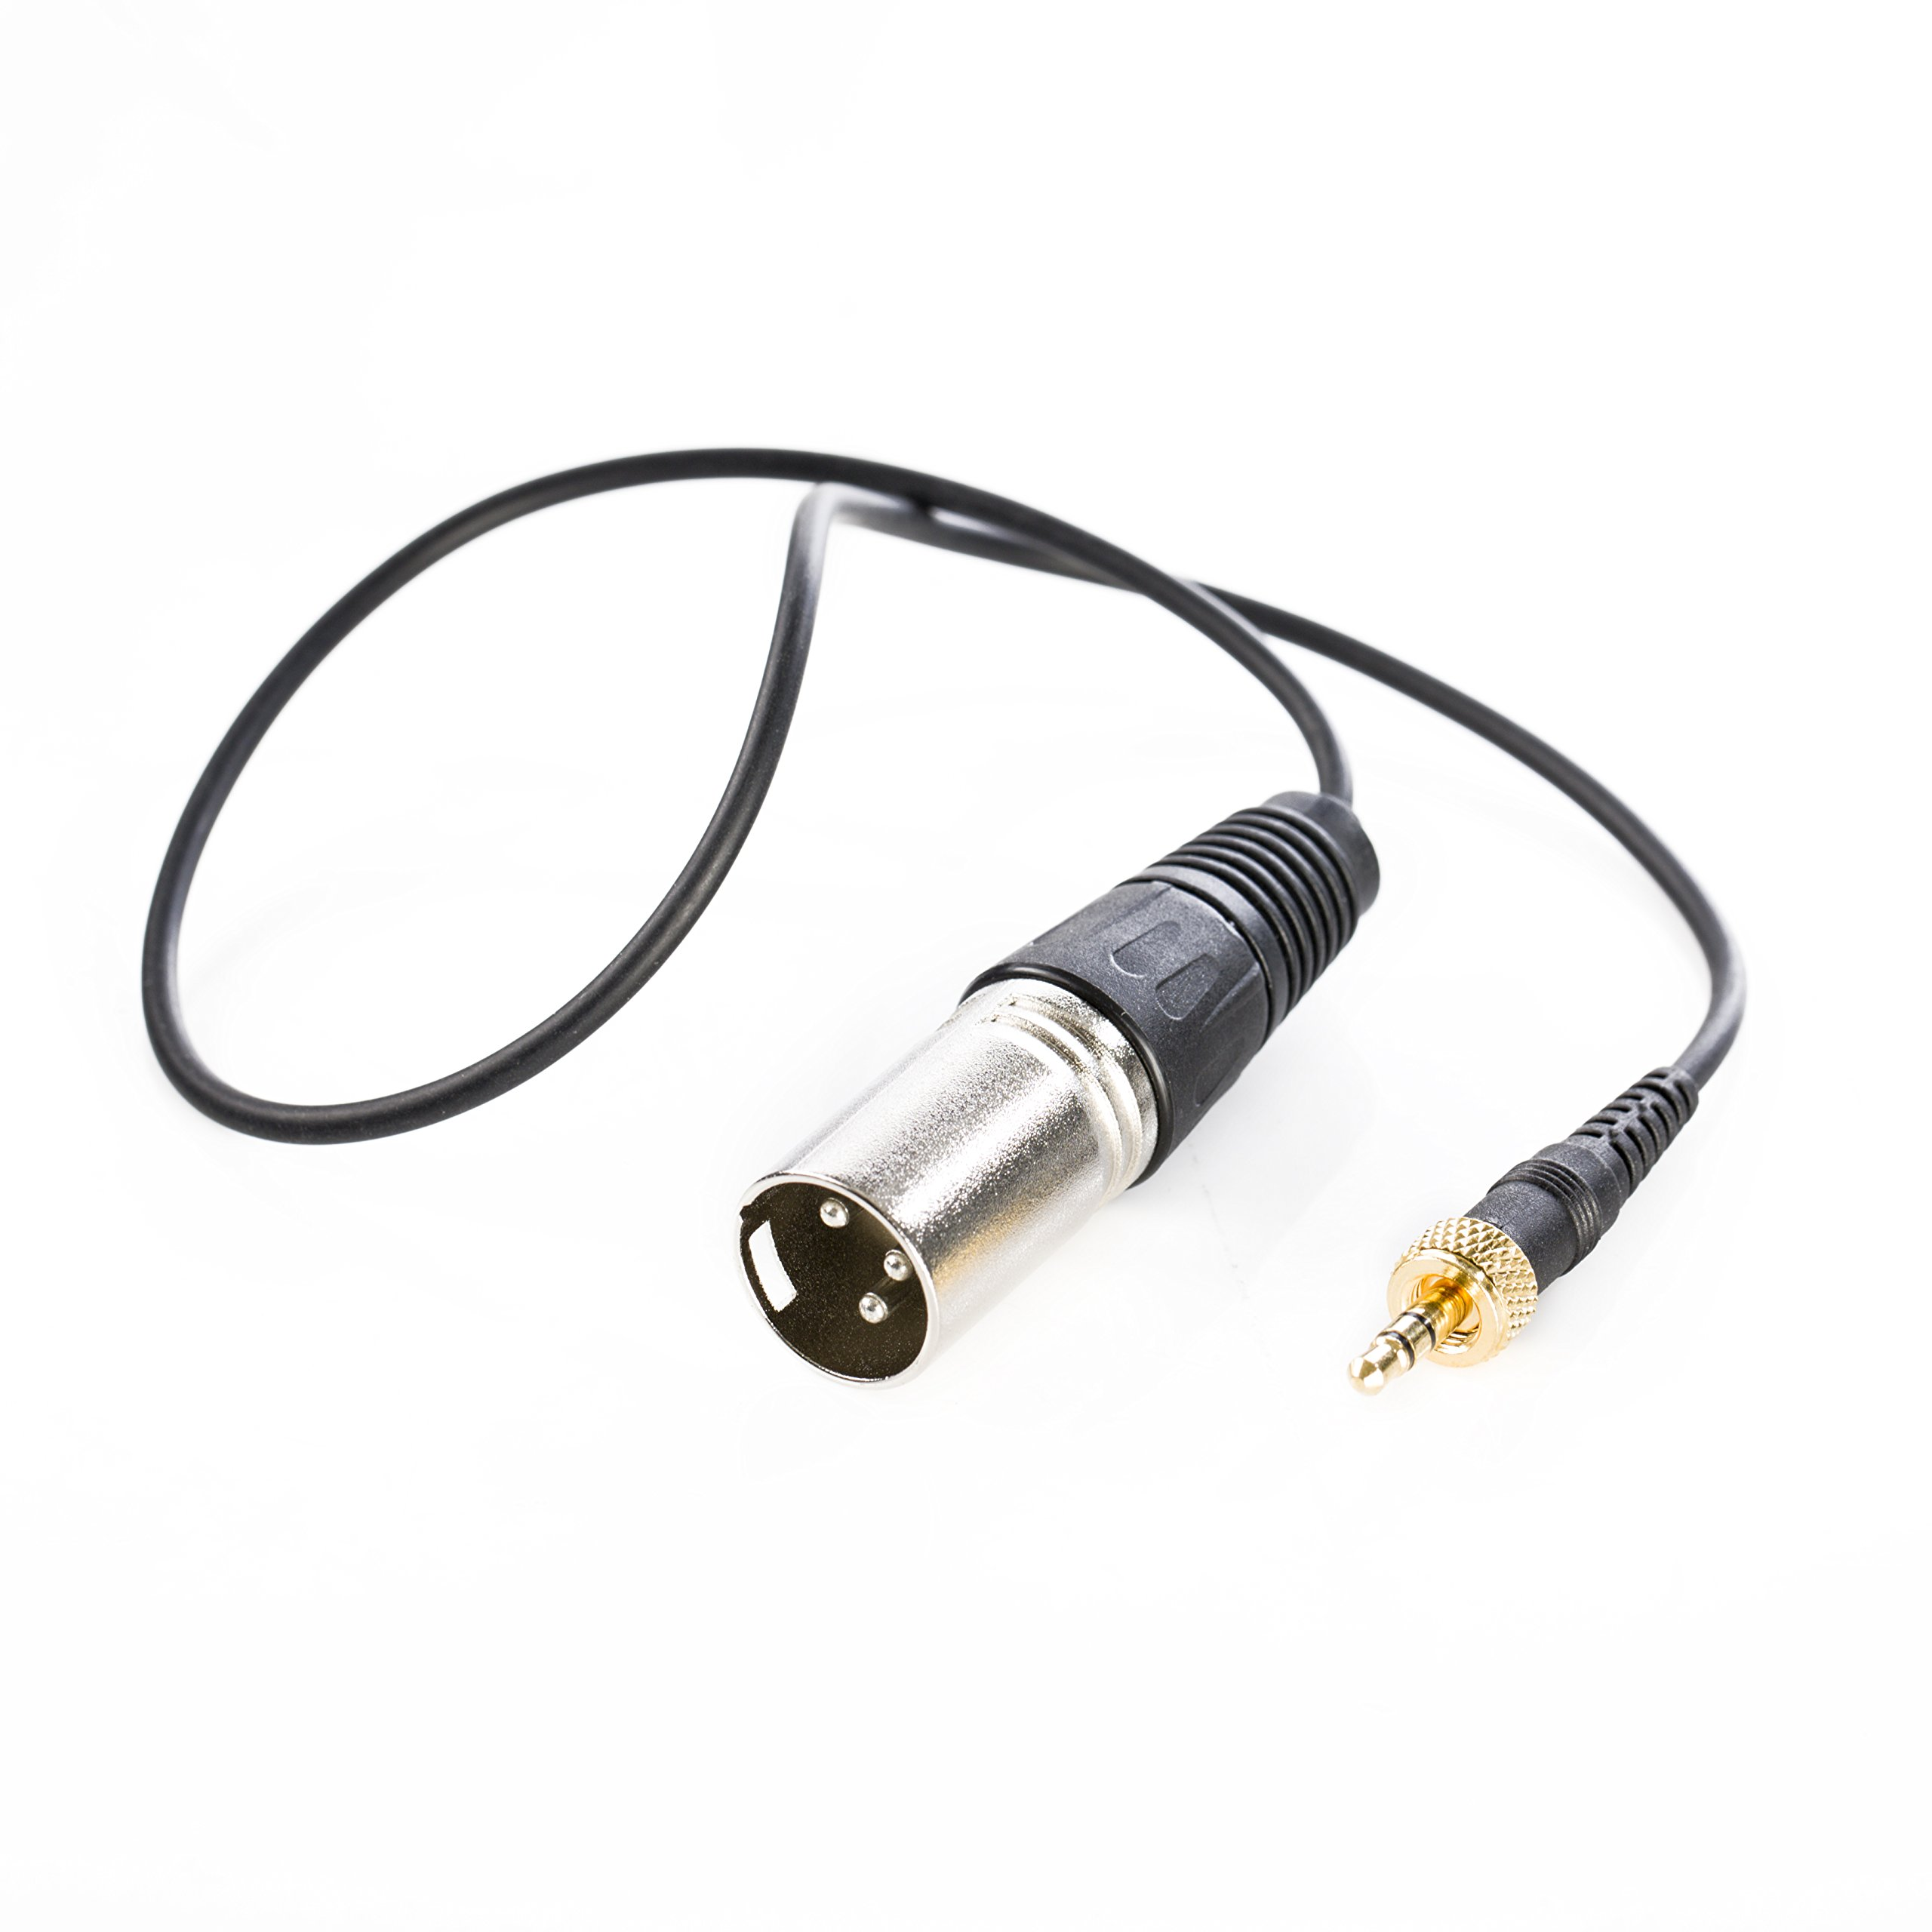 Saramonic SR-UM10-C35XLR Replacement XLR Output Connector Cable for the Saramonic UwMic9, UwMic10 and UwMic15 Wireless Microphone Systems